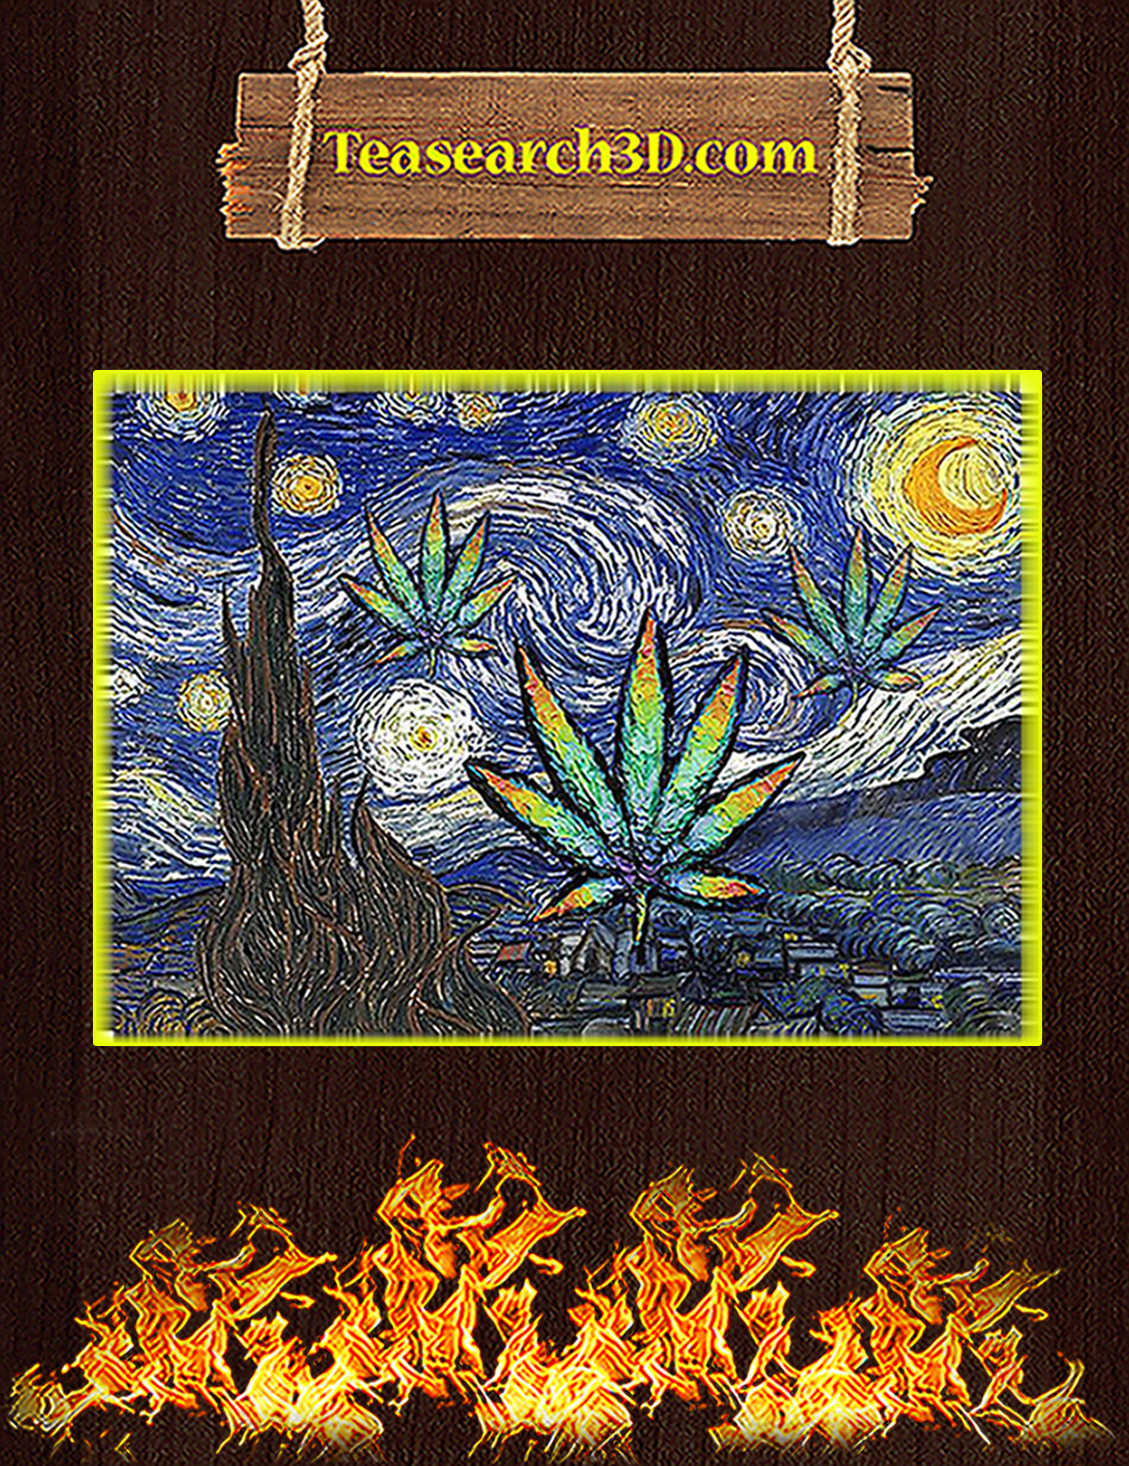 Weed cannabis starry night van gogh poster A3